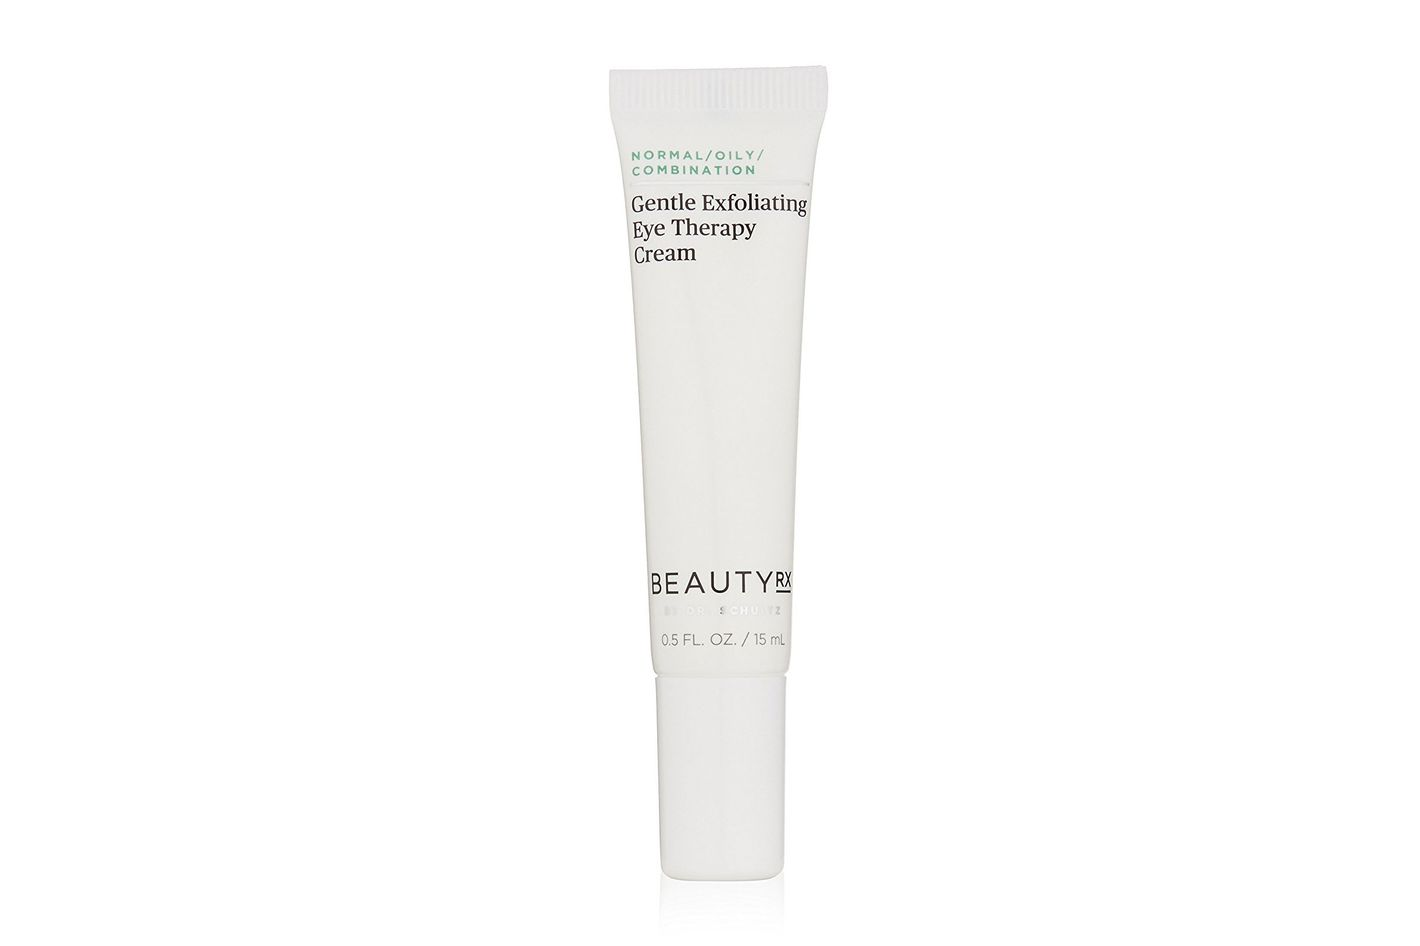 BeautyRx by Dr. Schultz Gentle Exfoliating Eye Therapy Cream